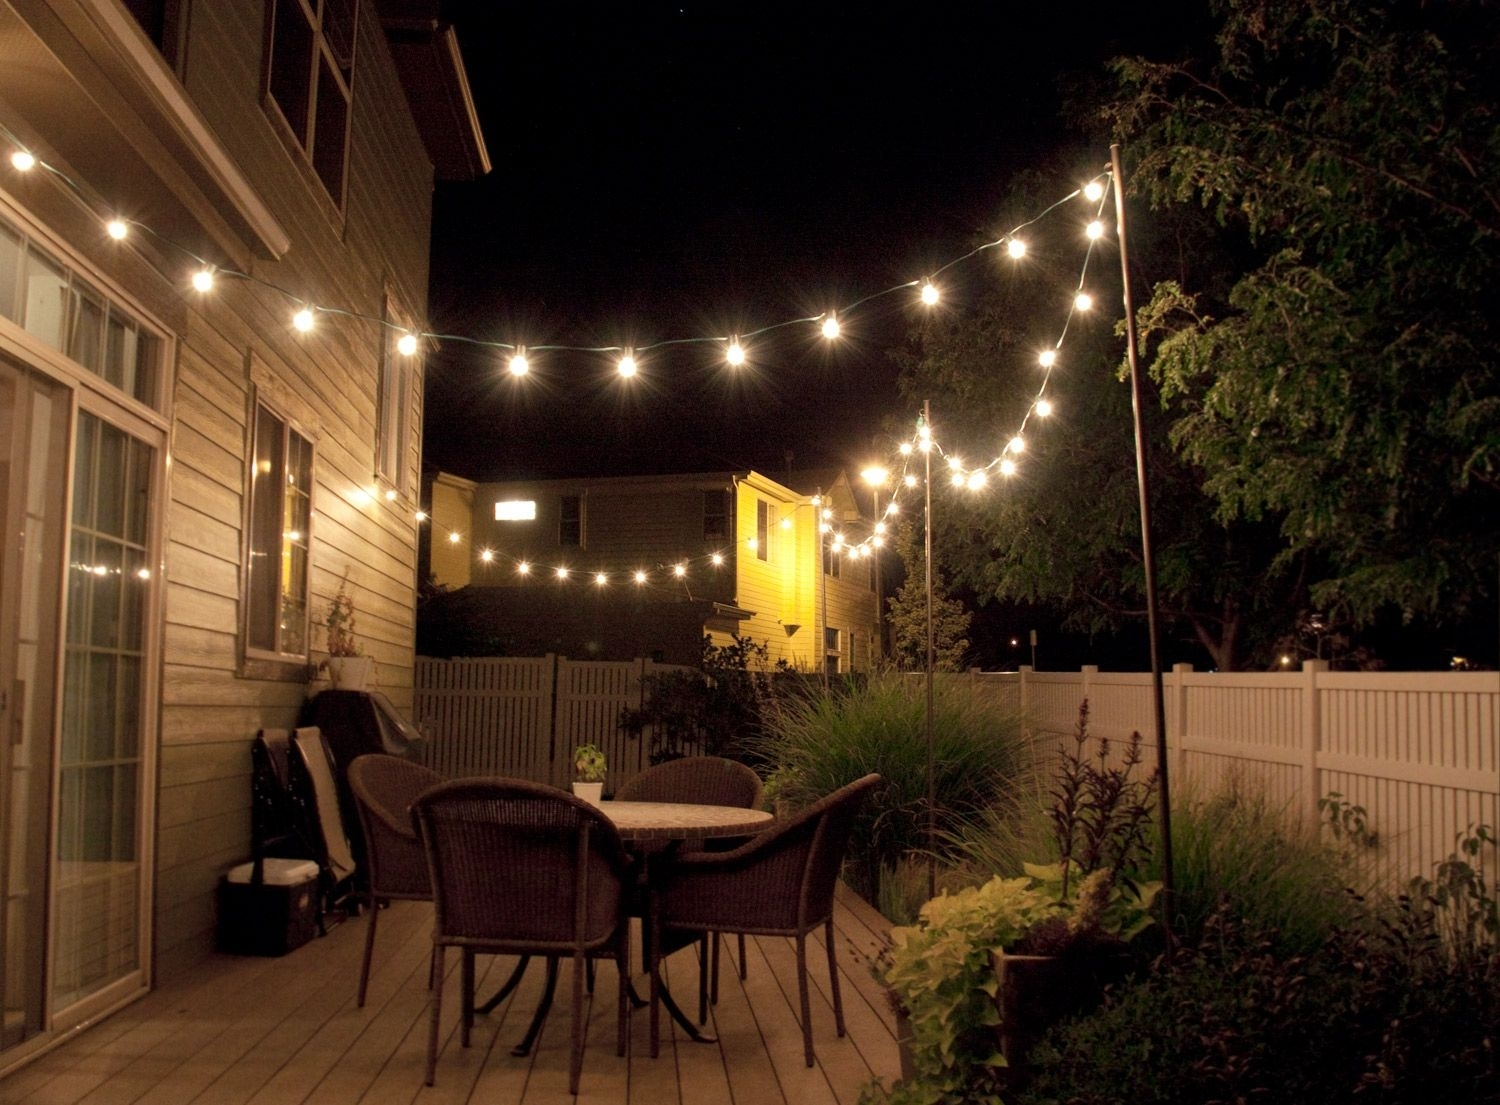 How To Make Inexpensive Poles To Hang String Lights On – Café Style In Outdoor Hanging Globe Lanterns (#13 of 15)